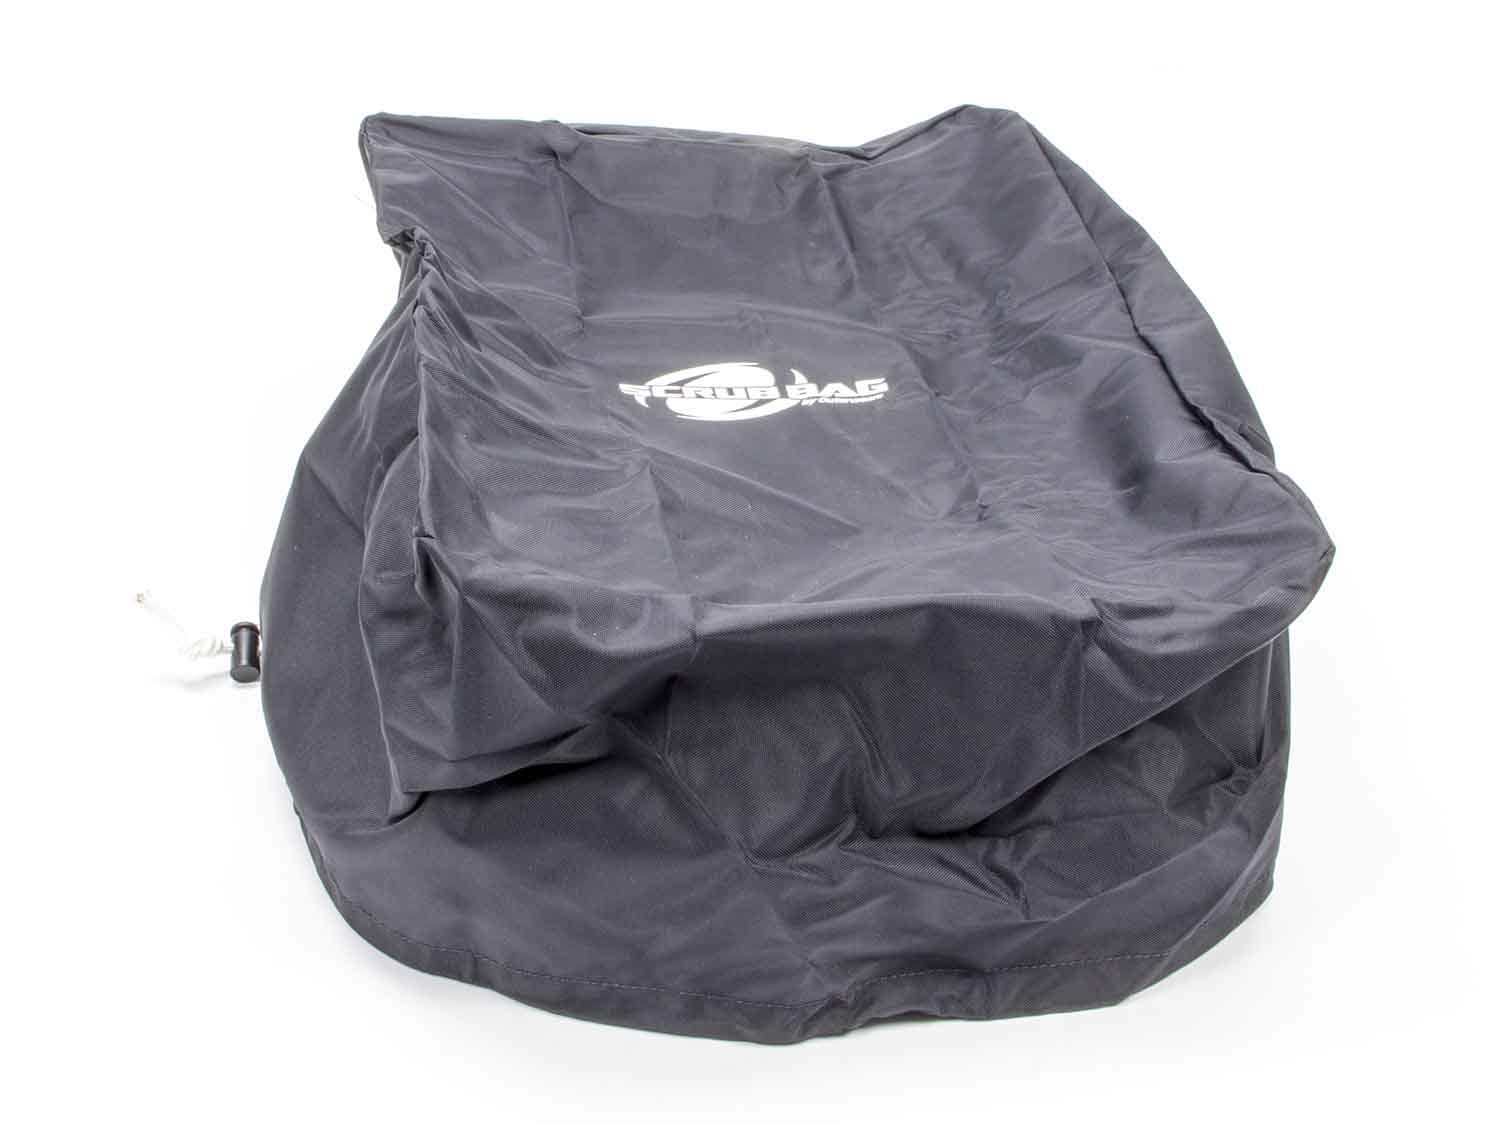 Outerwears 30-1016-01 Scrub Bag, 18-3/4 x 13 in Rectangle, 6-1/4 in Tall, Polyester, Black, Sprint Airboxes, Each